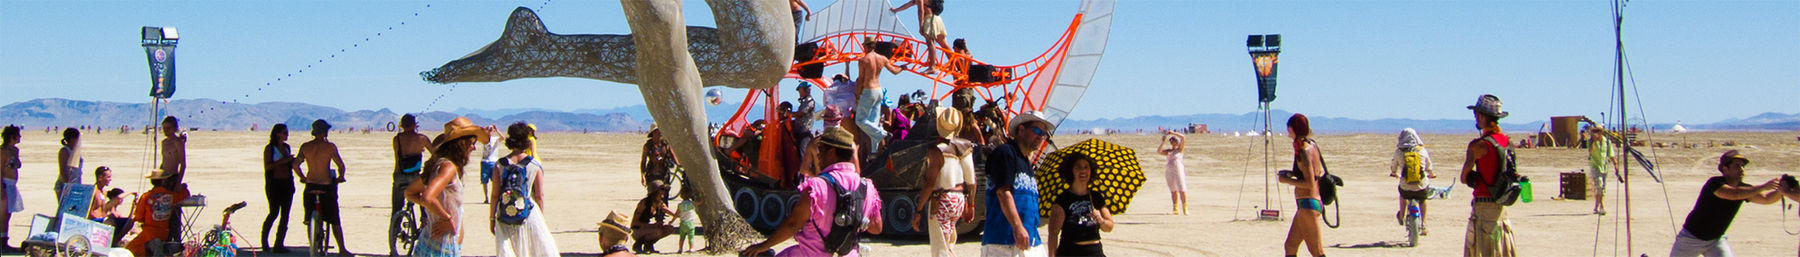 Bliss dance at Burning man 2010 banner.jpg